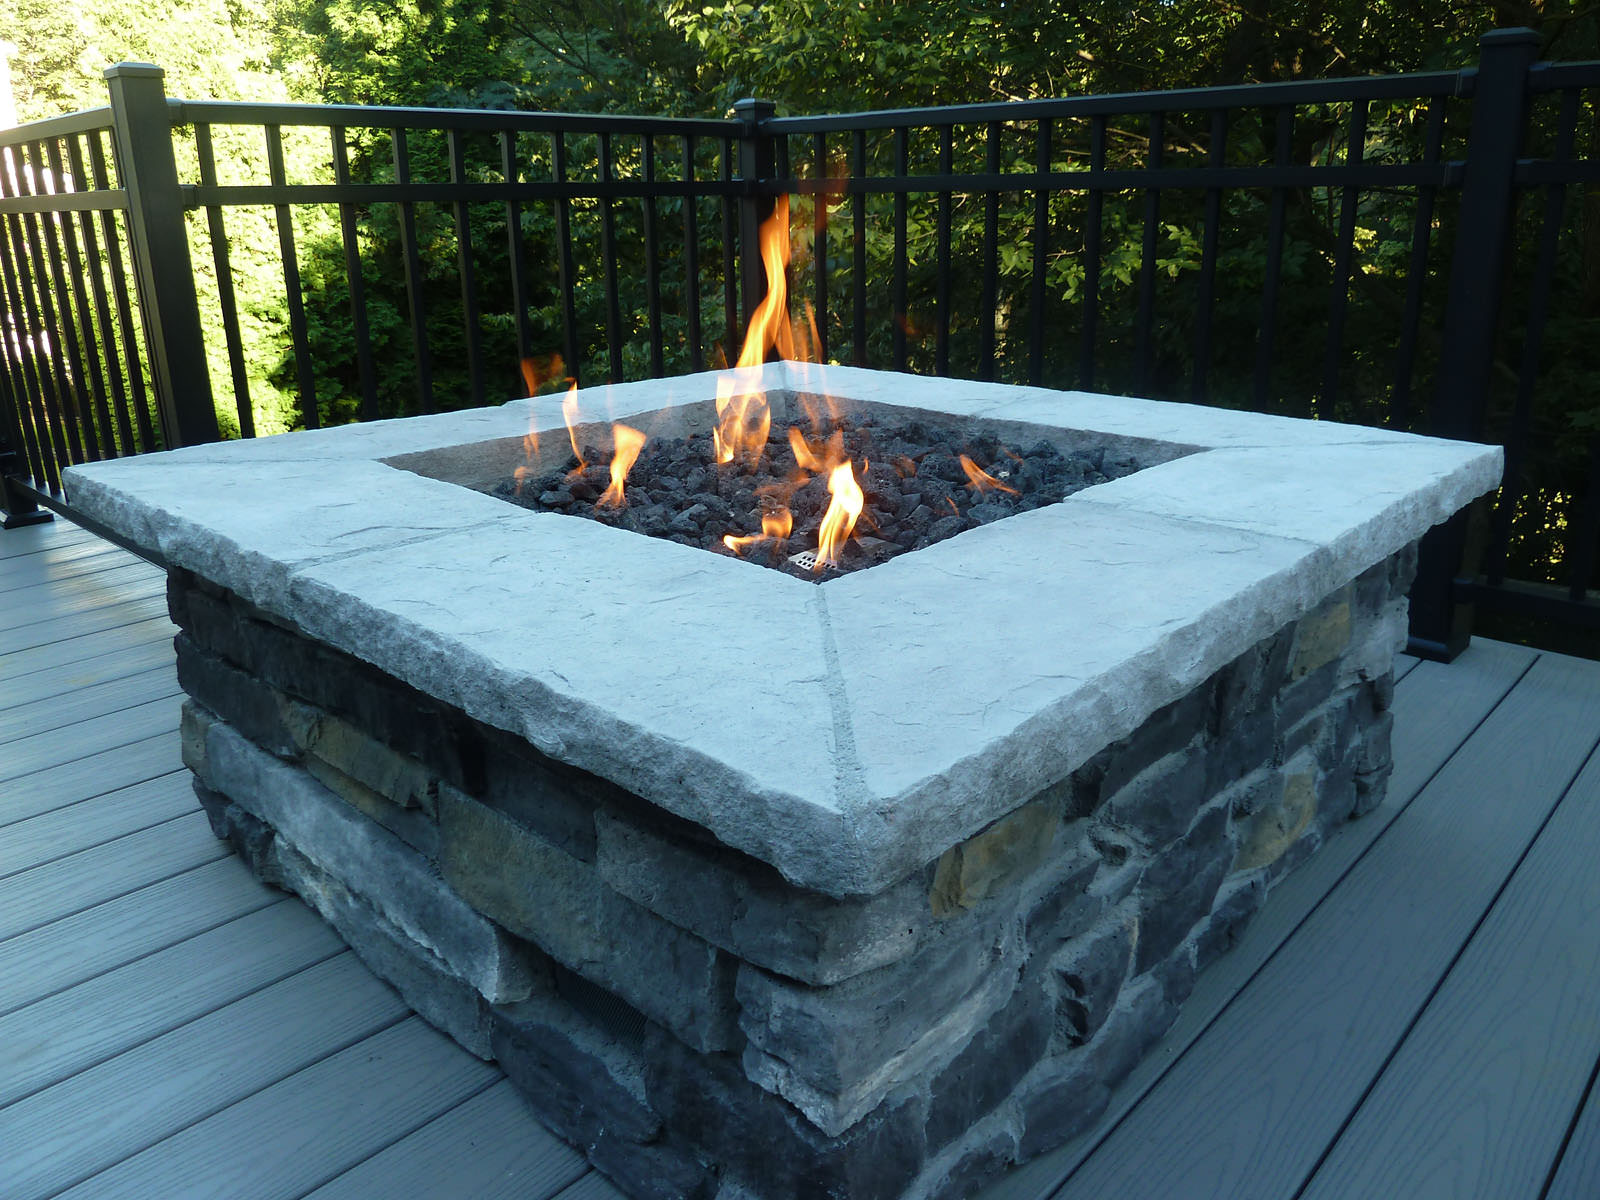 This gas firepit creates the perfect place to kick back and relax after a long day.